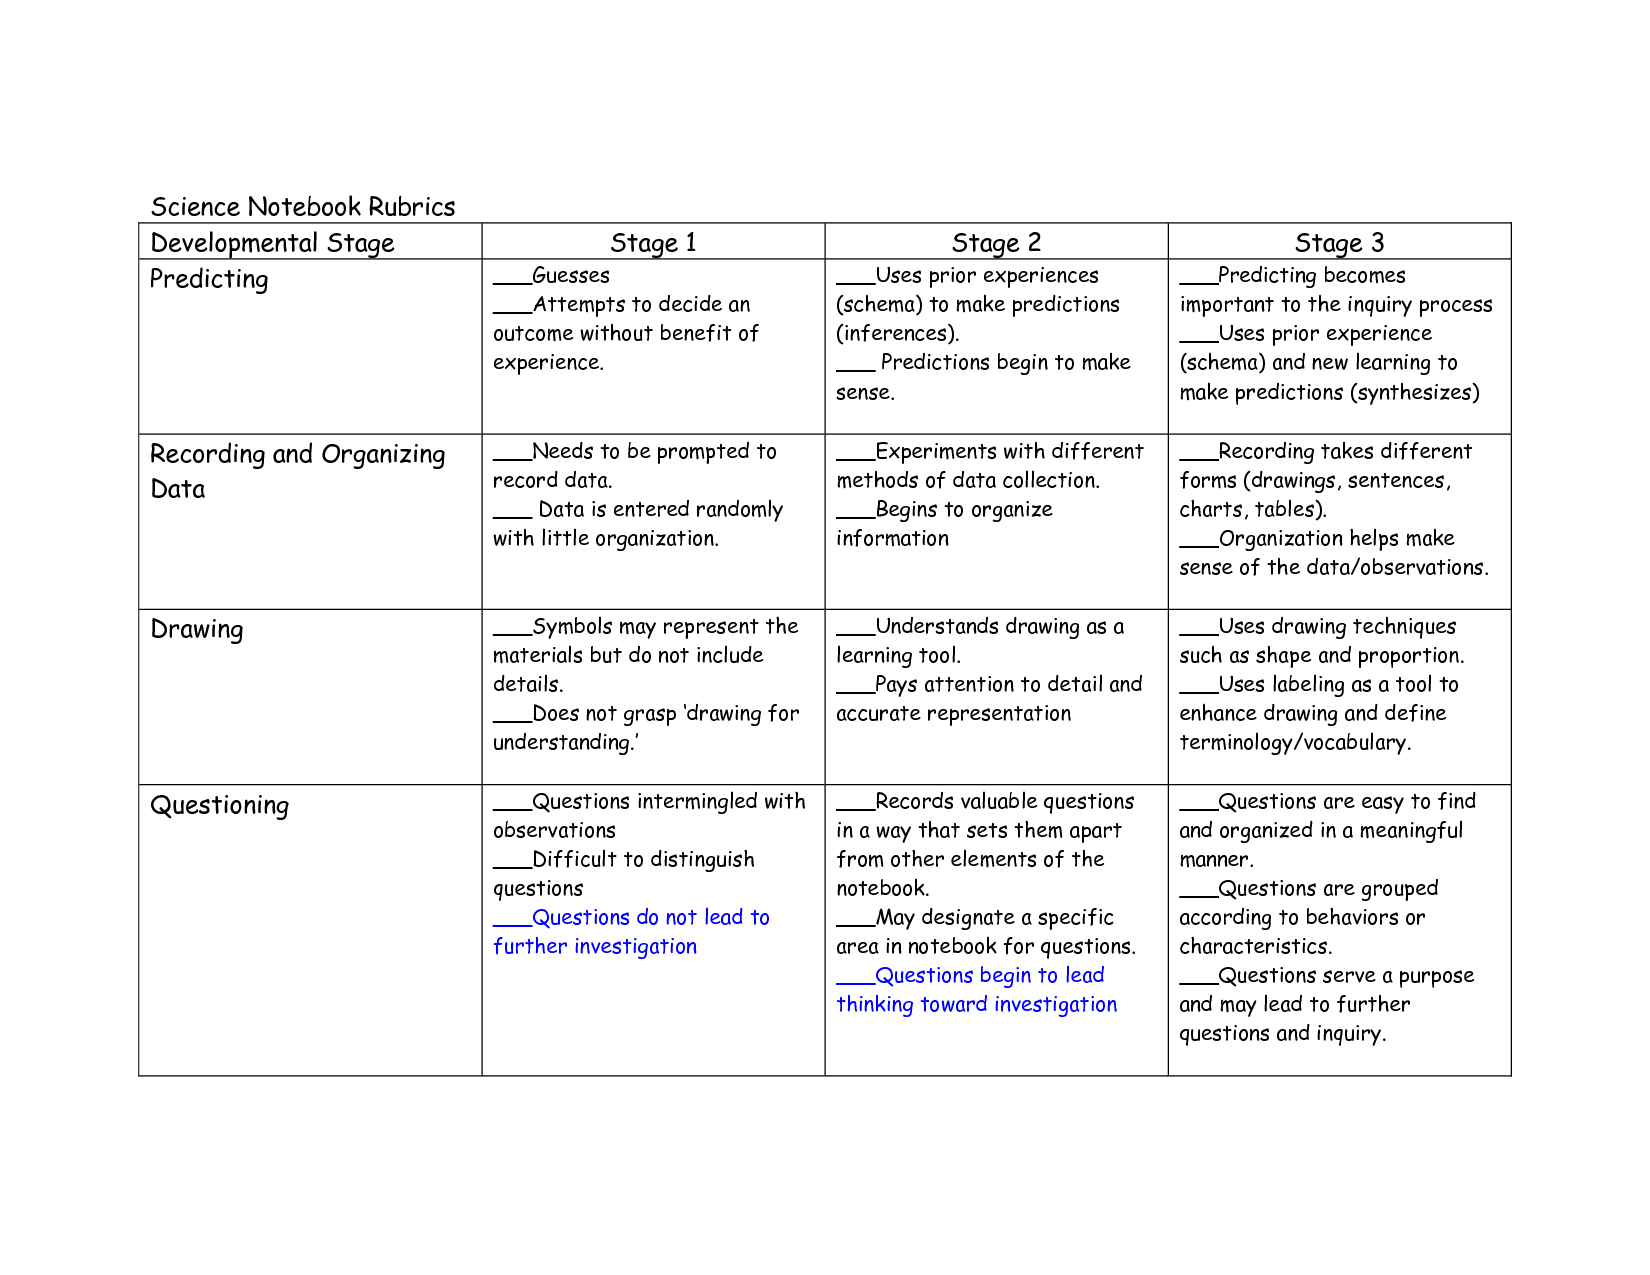 rubrics essay elementary This rubric delineates specific expectations about an essay assignment to students and provides a means of assessing completed student essays.